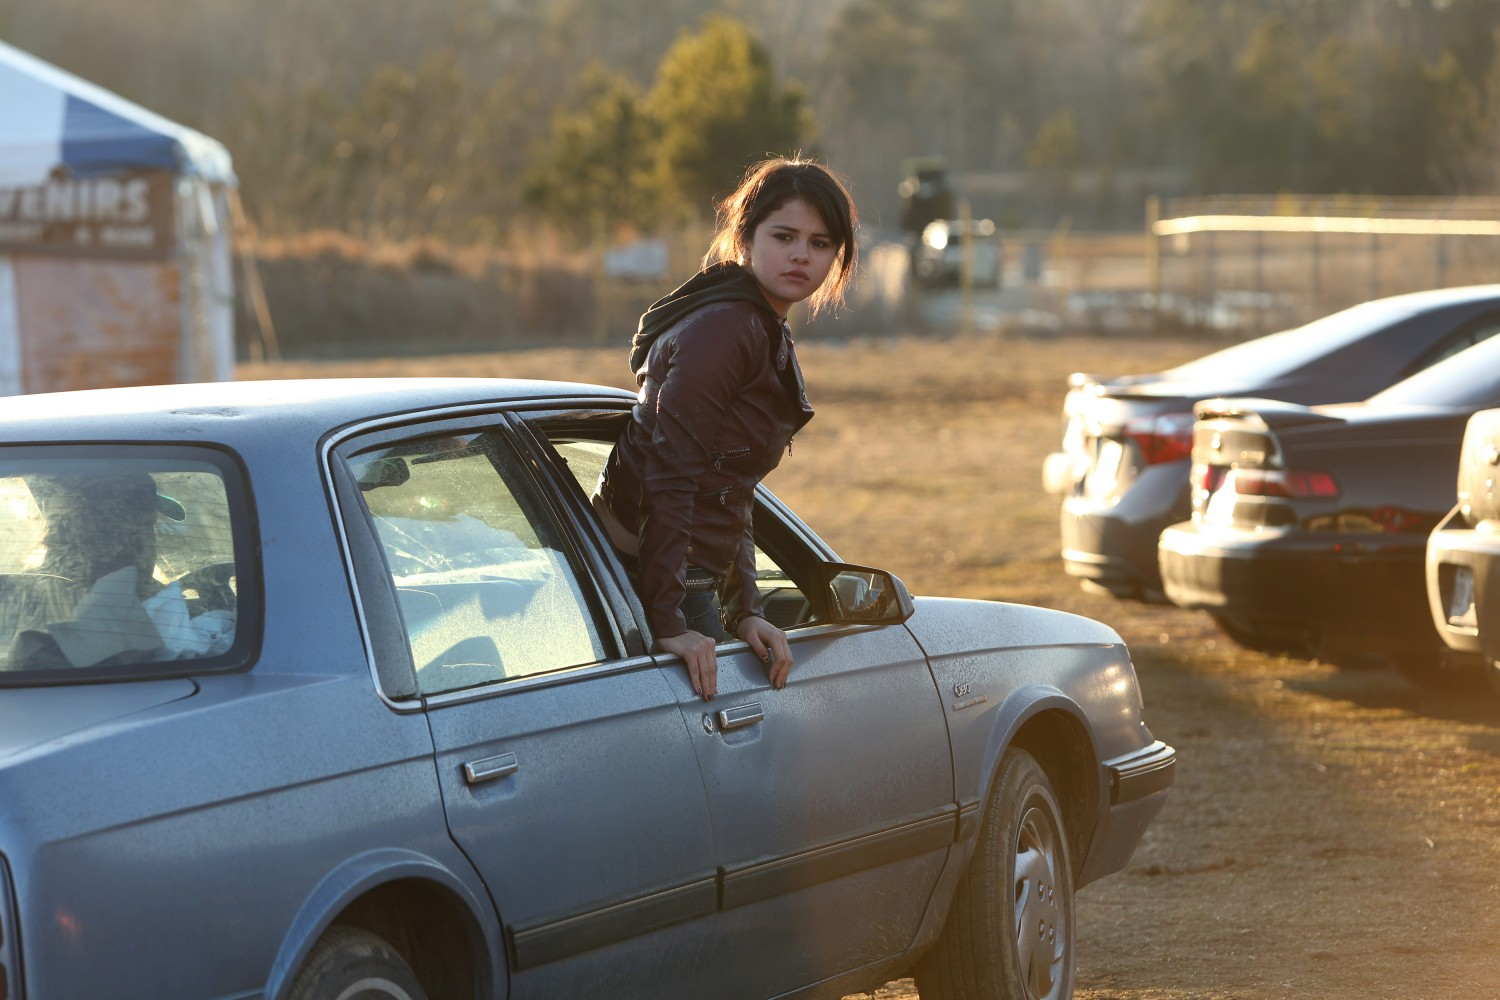 The Fundamentals of Caring directed by Rob Burnett and starring Selena Gomez